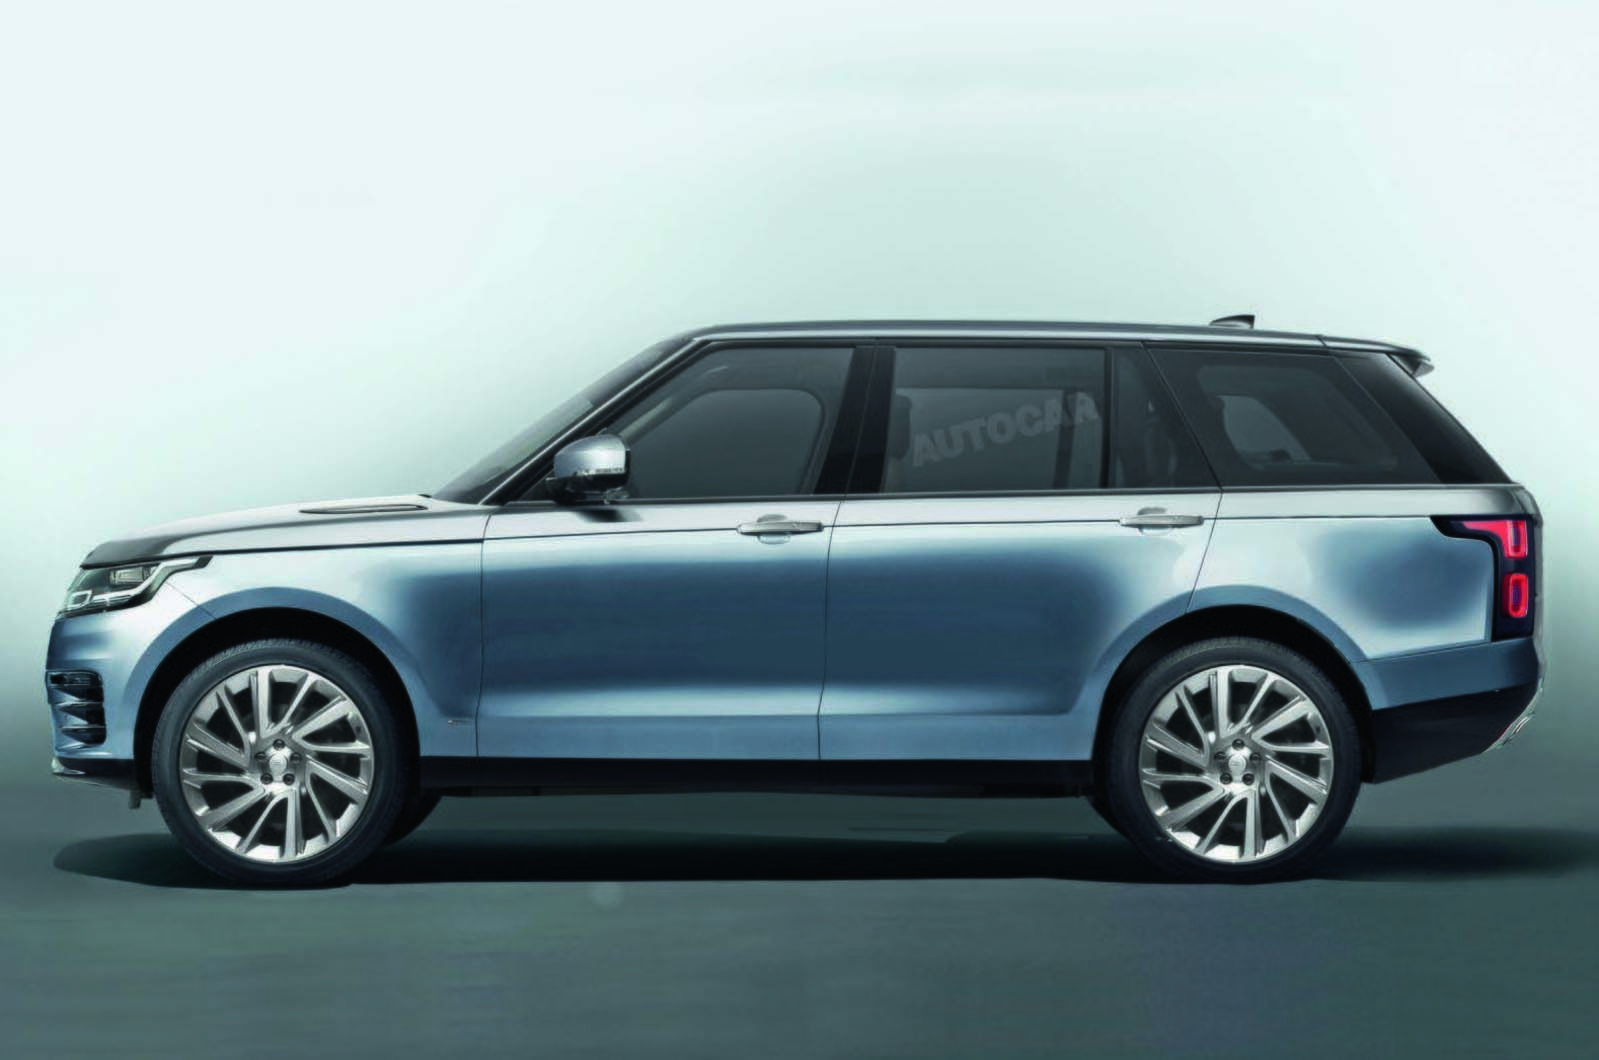 2021 Land Rover Range Rover Base